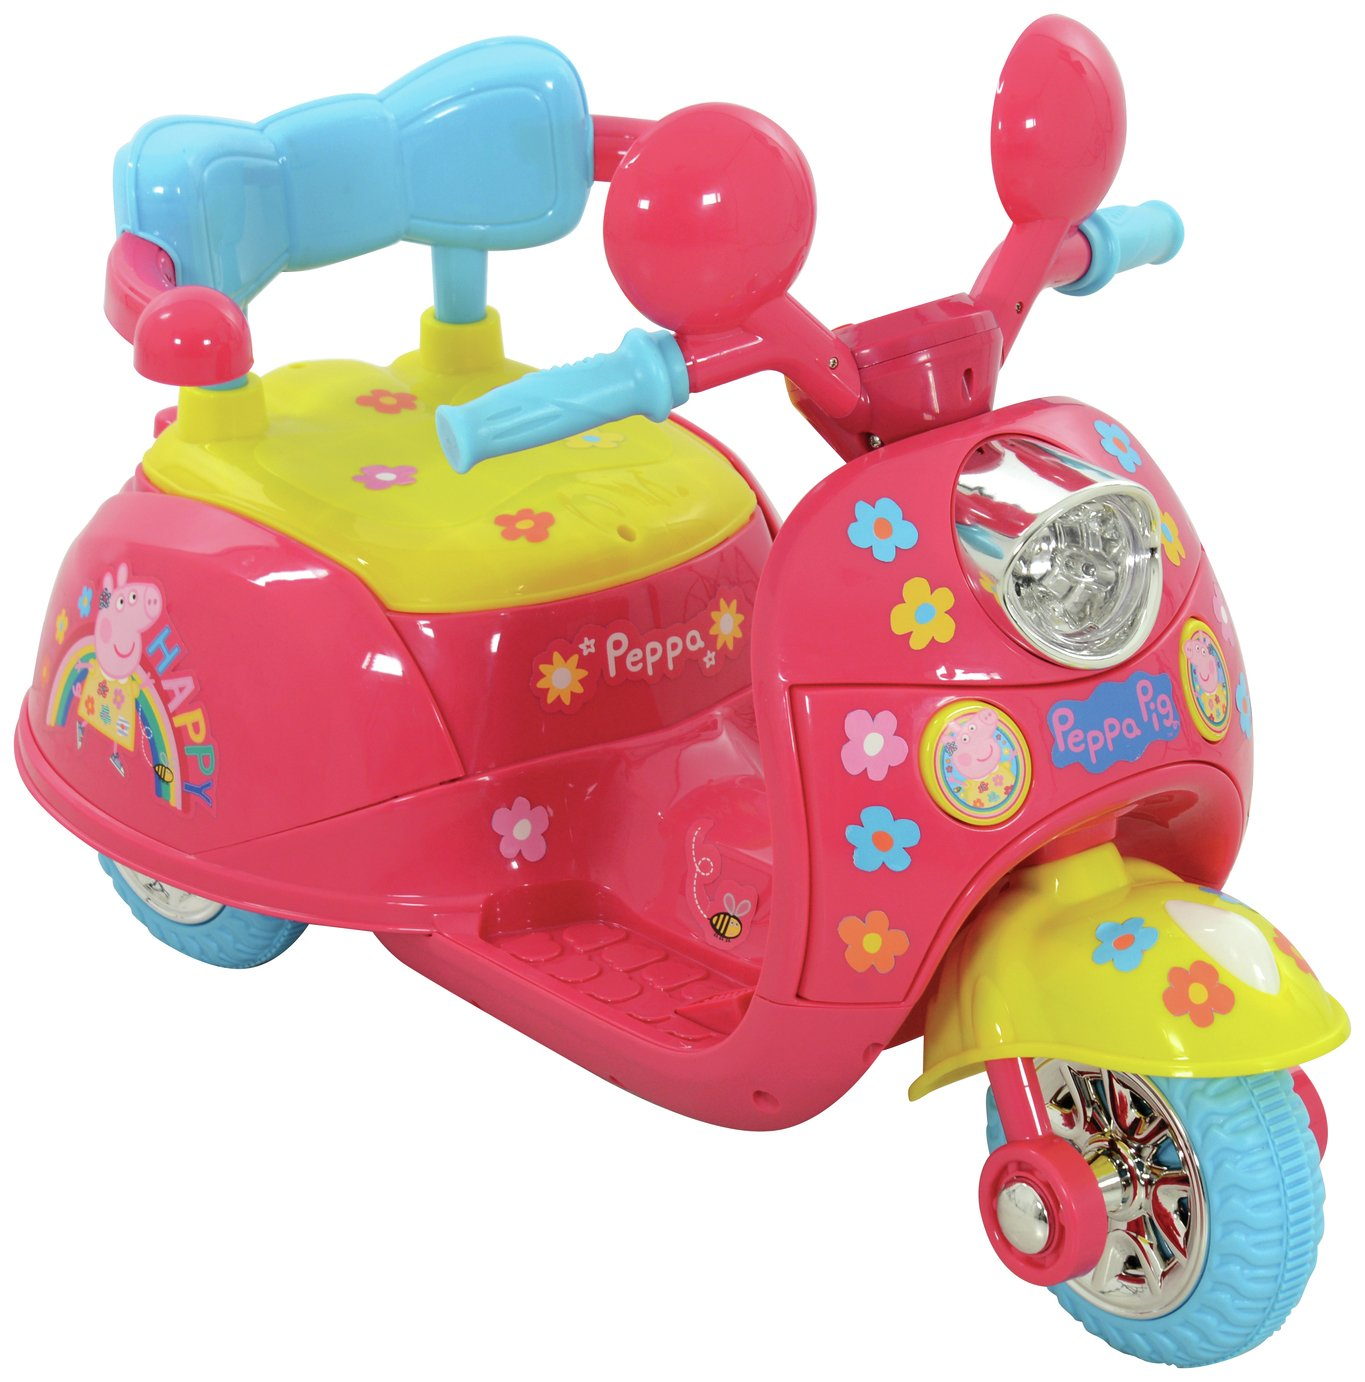 Peppa Pig 6V Powered Vehicle from Peppa pig